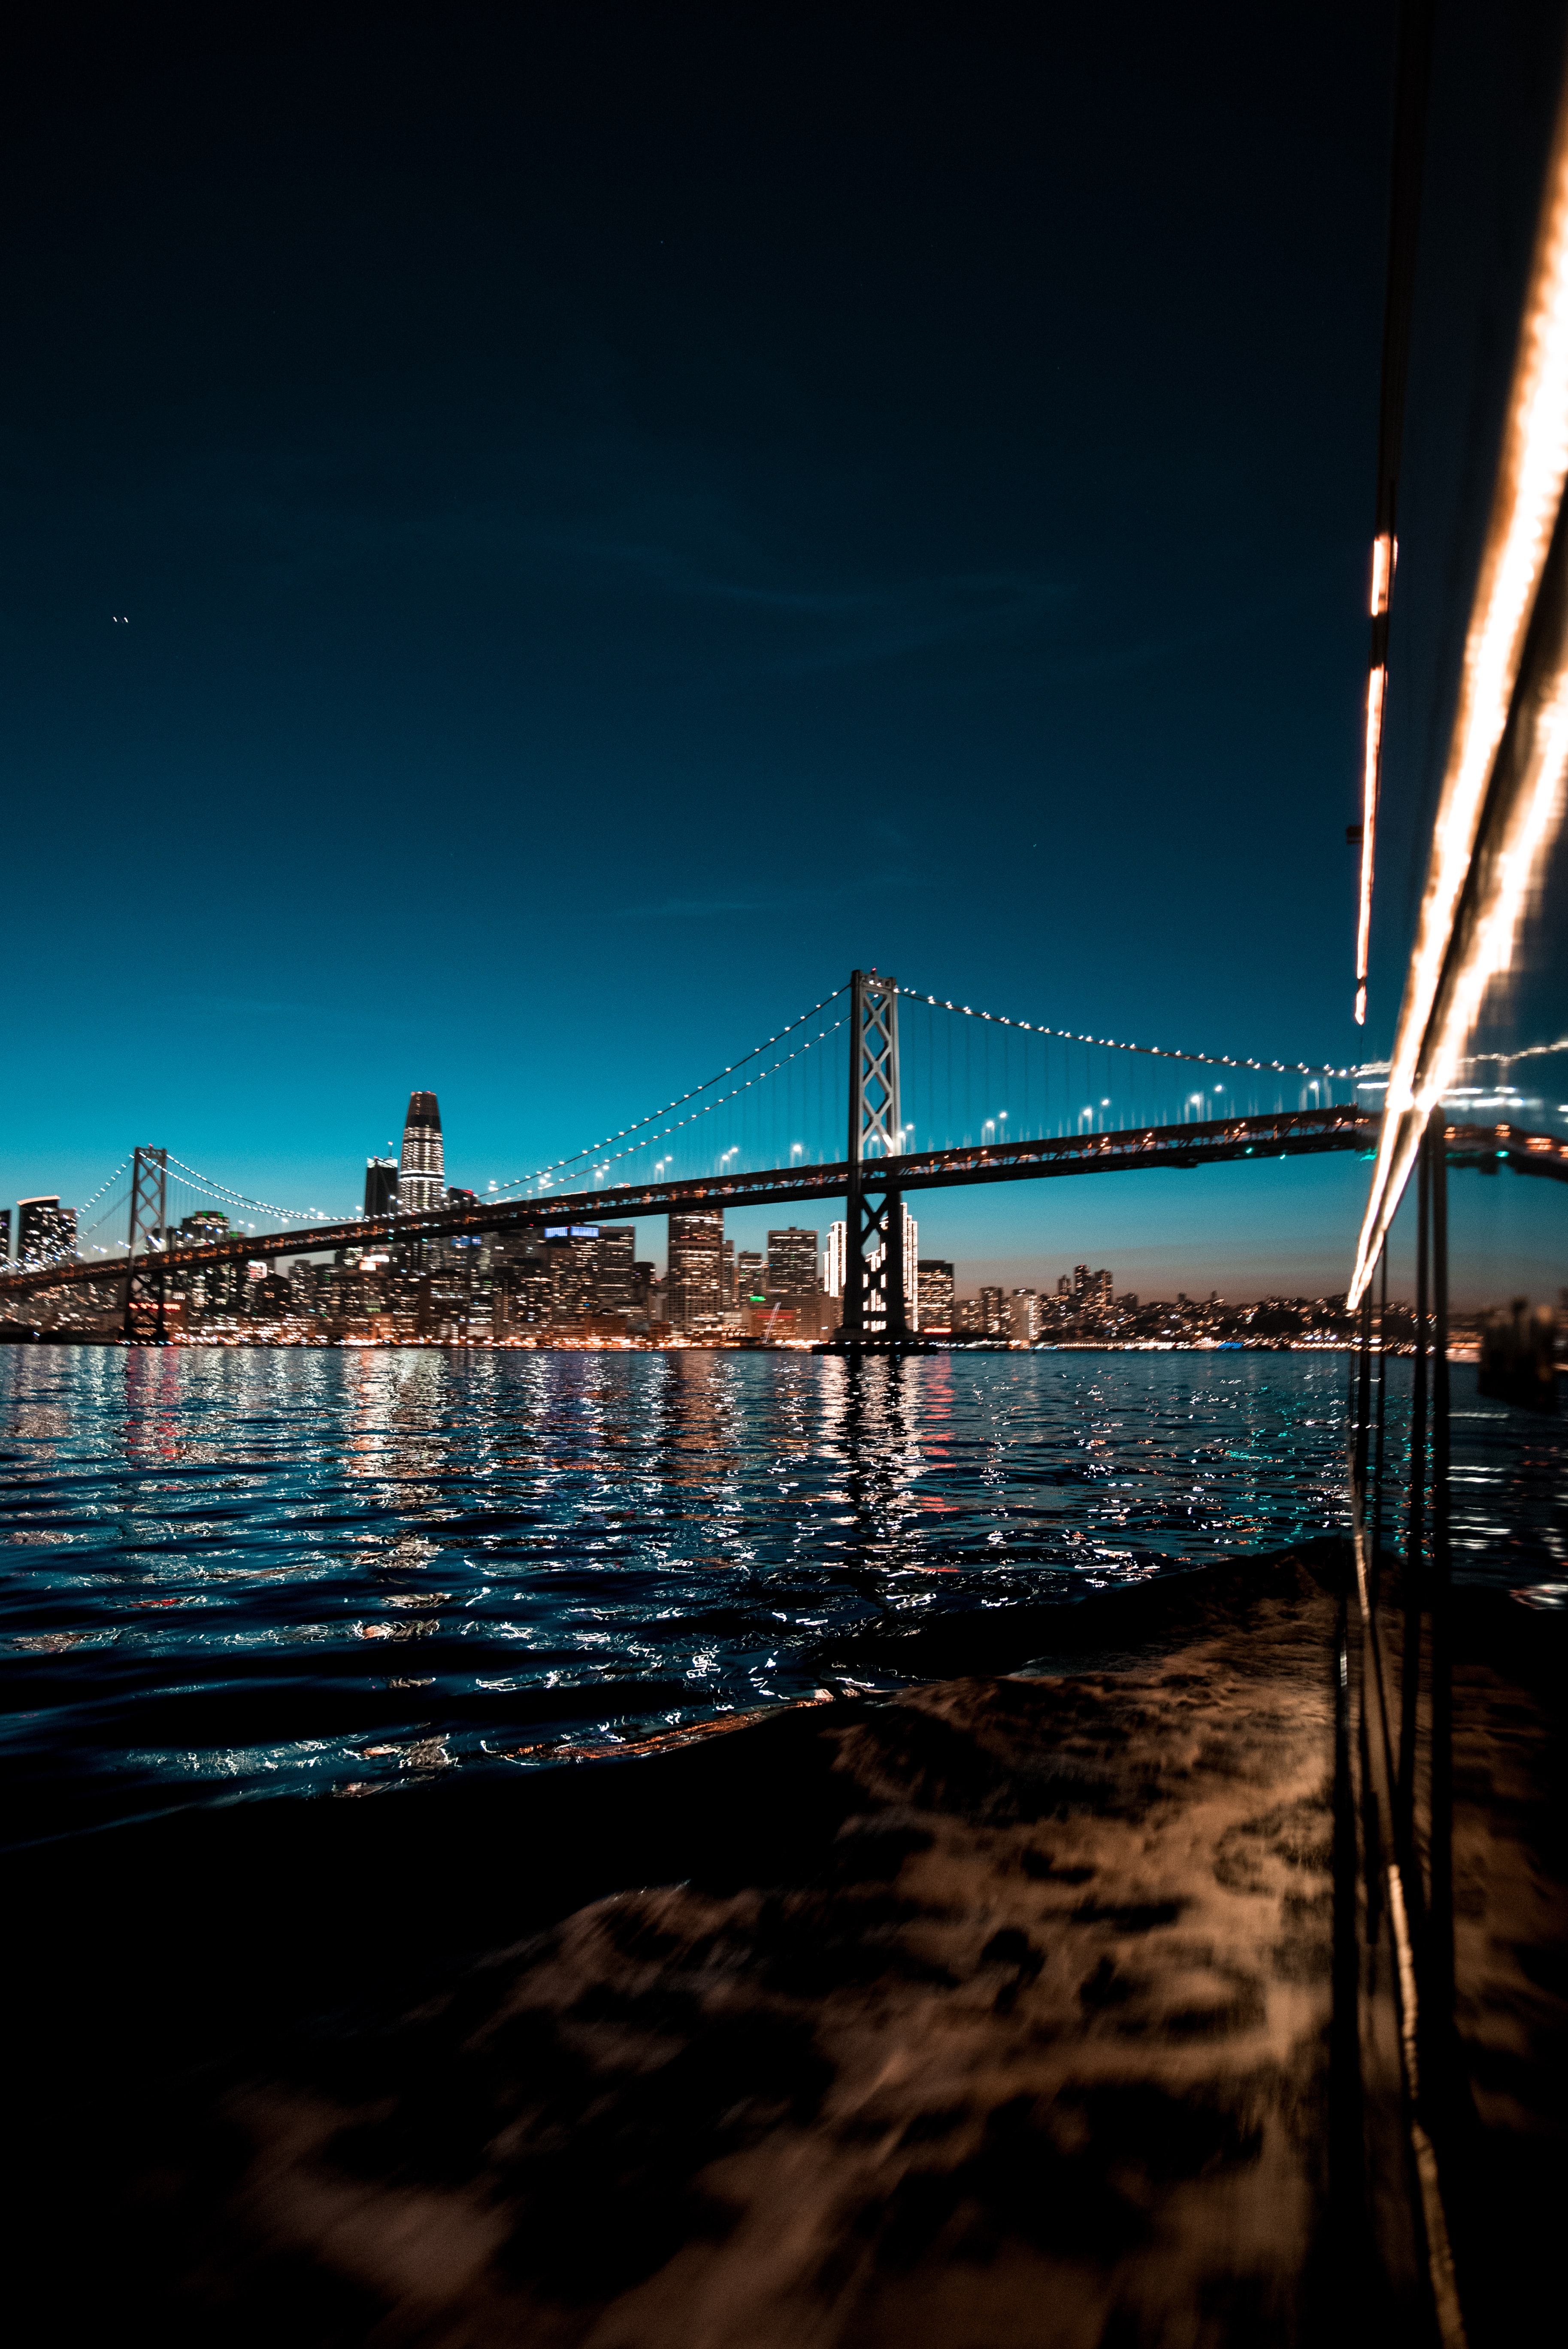 San Francisco-Oakland Bay Bridge, California during nighttime